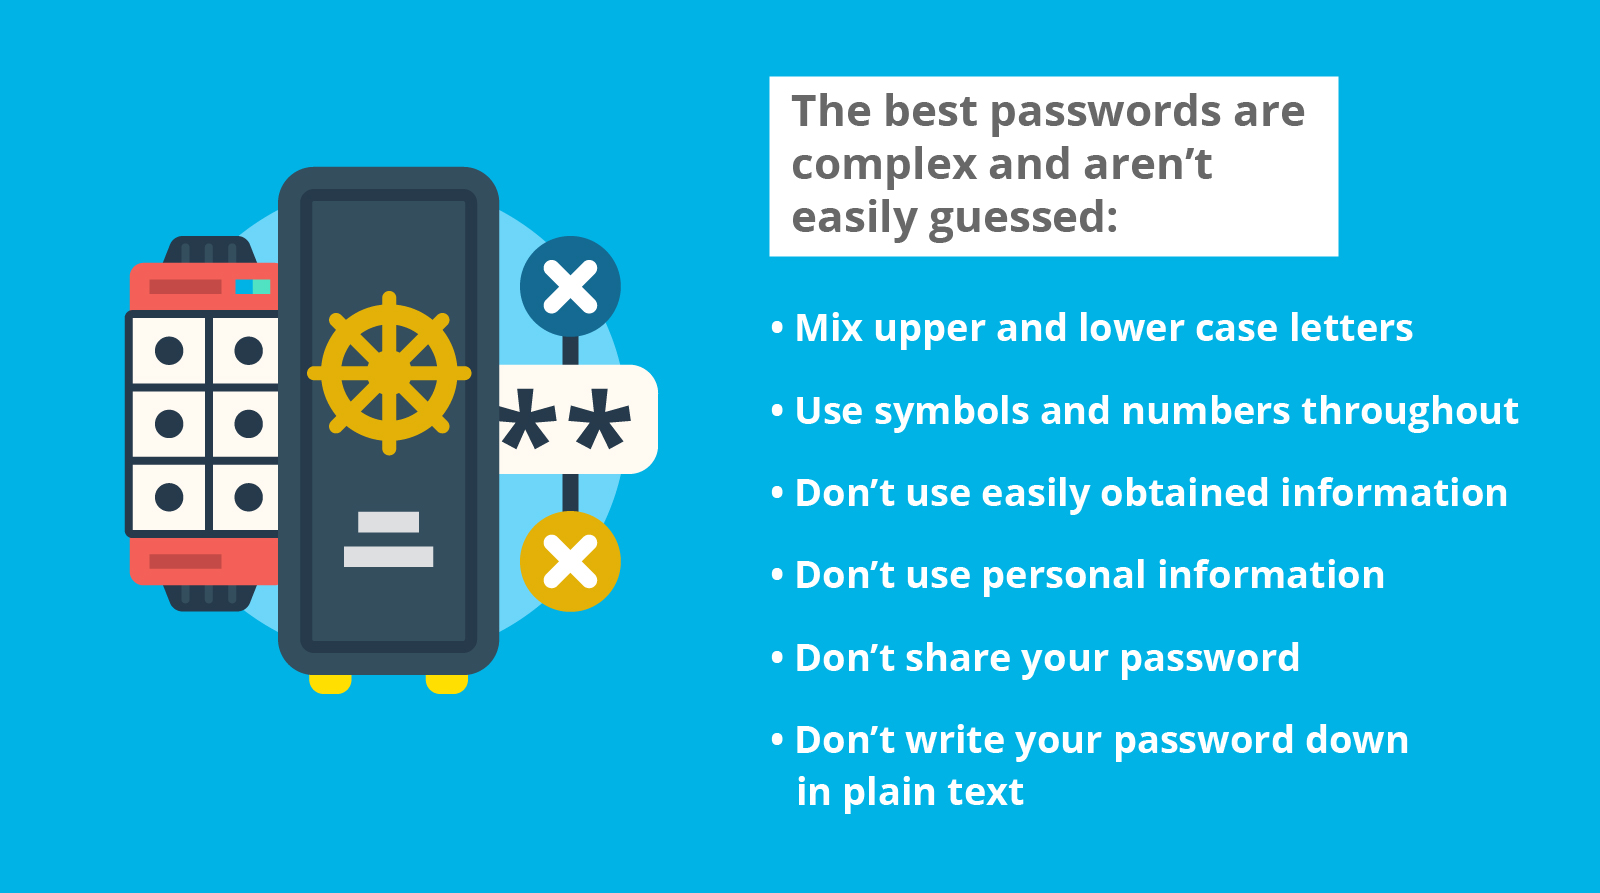 A guide to choosing a strong password